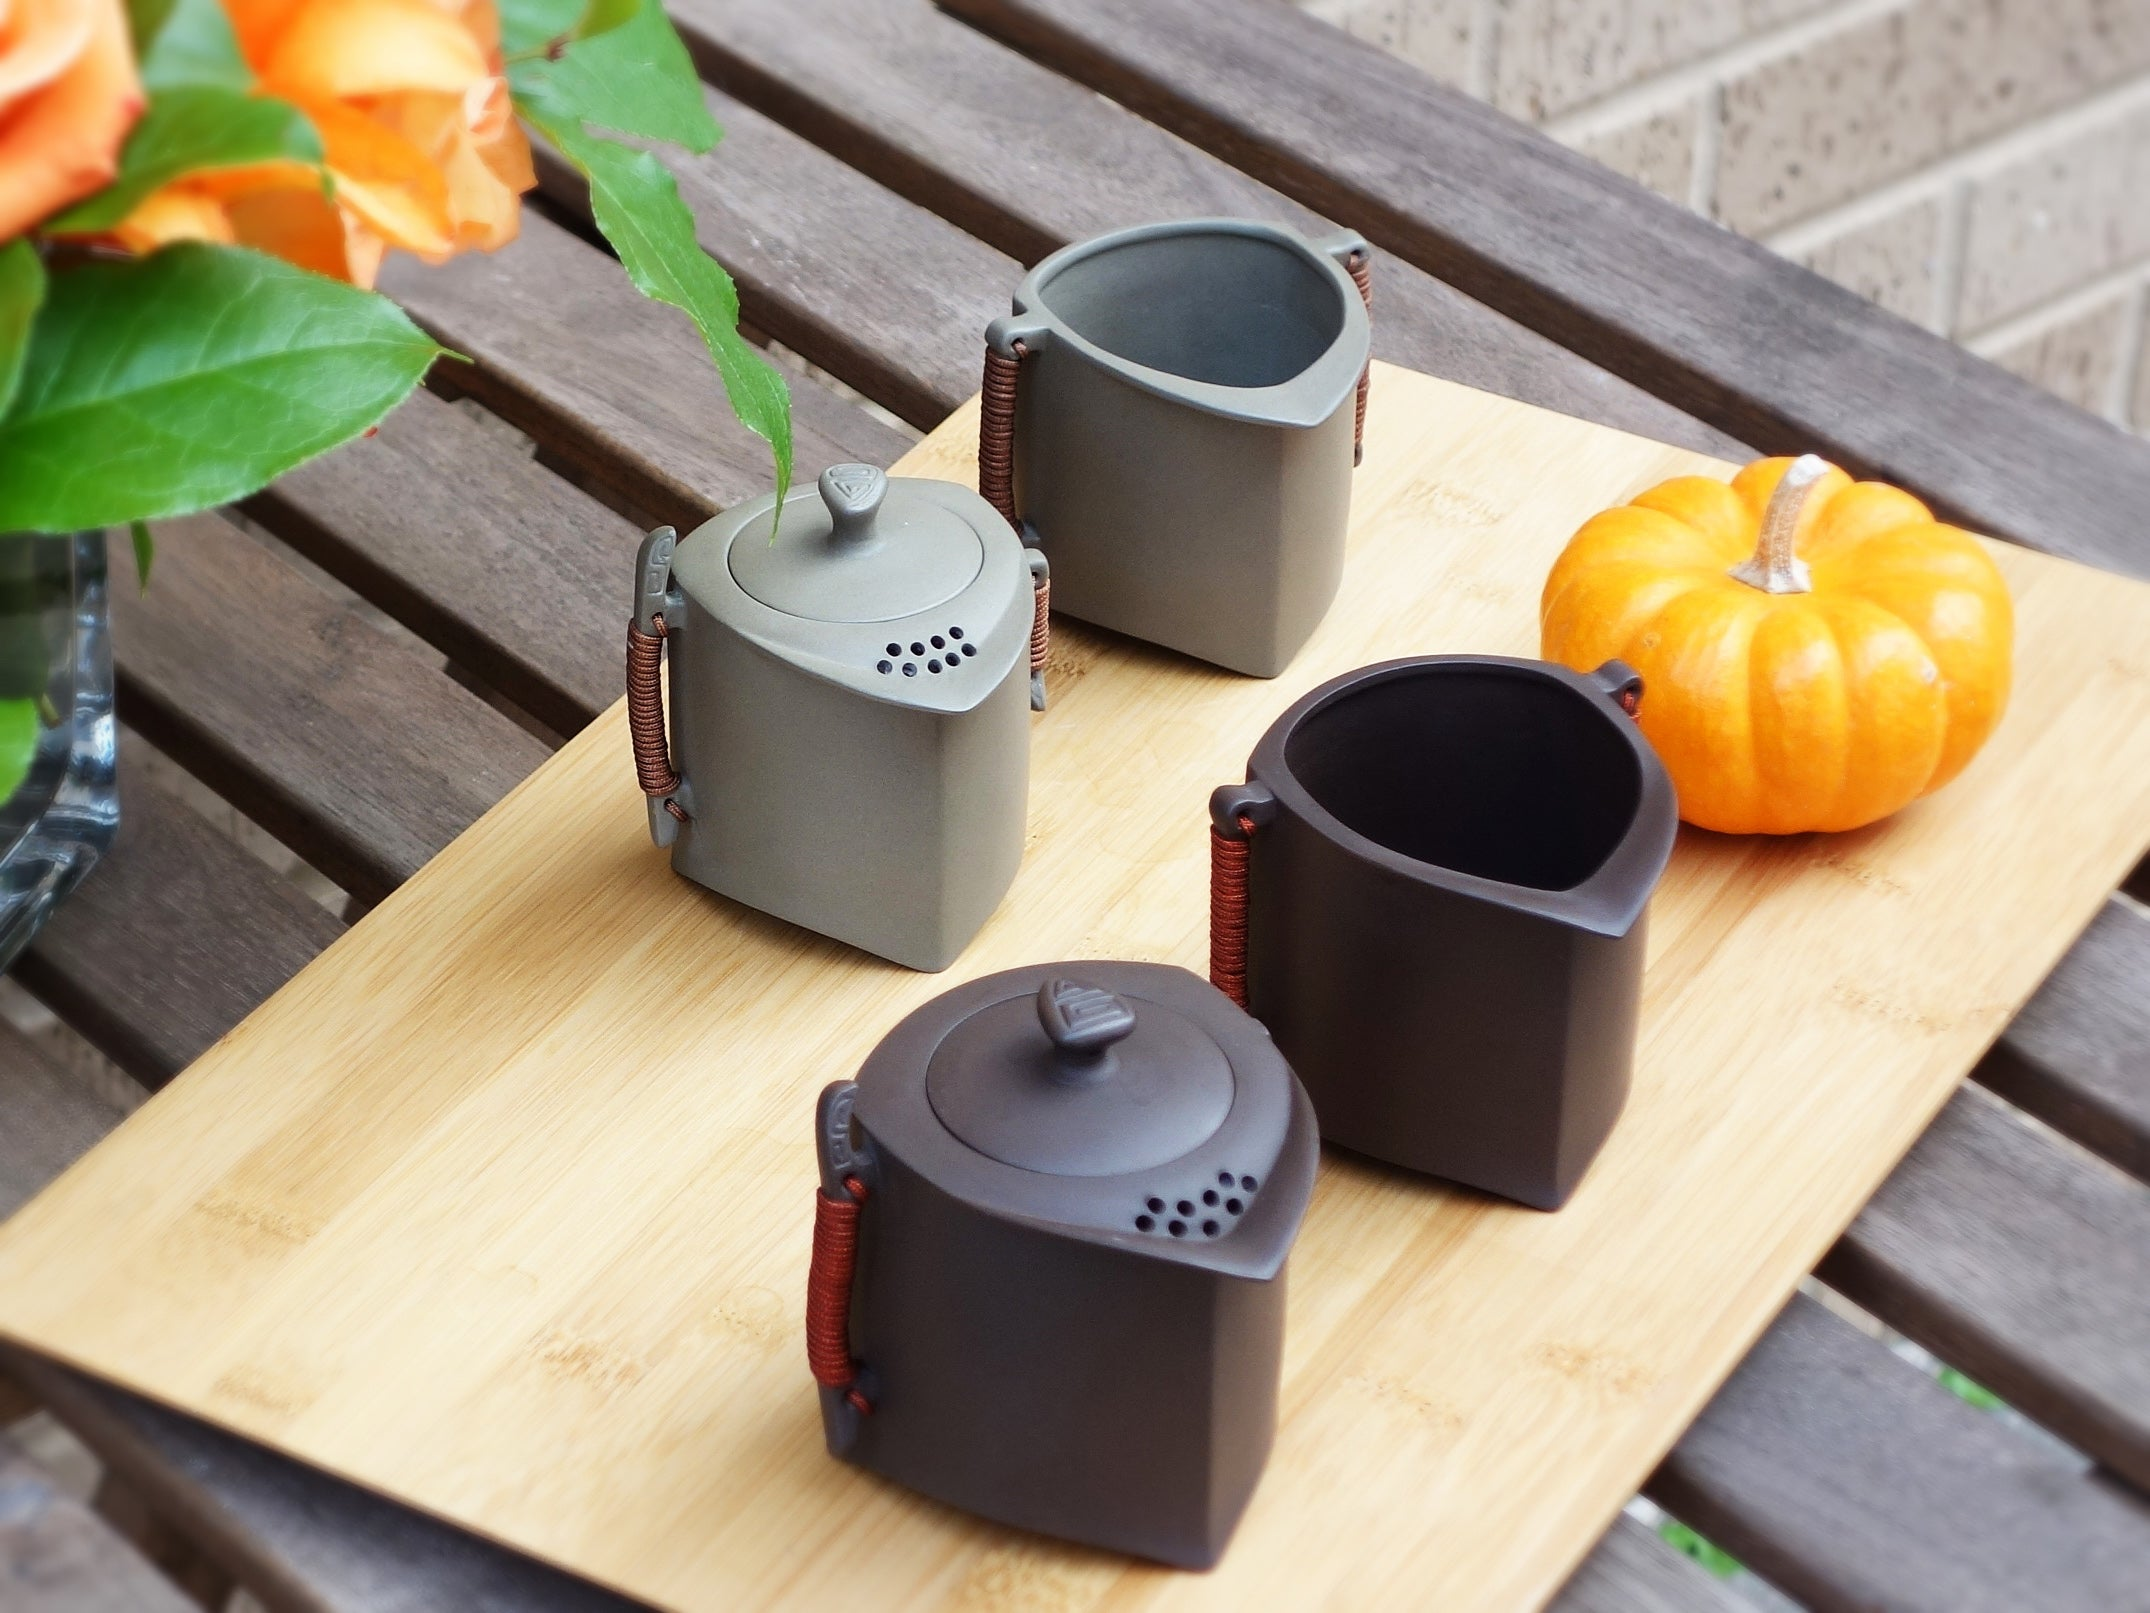 Philosophy One Teaware set